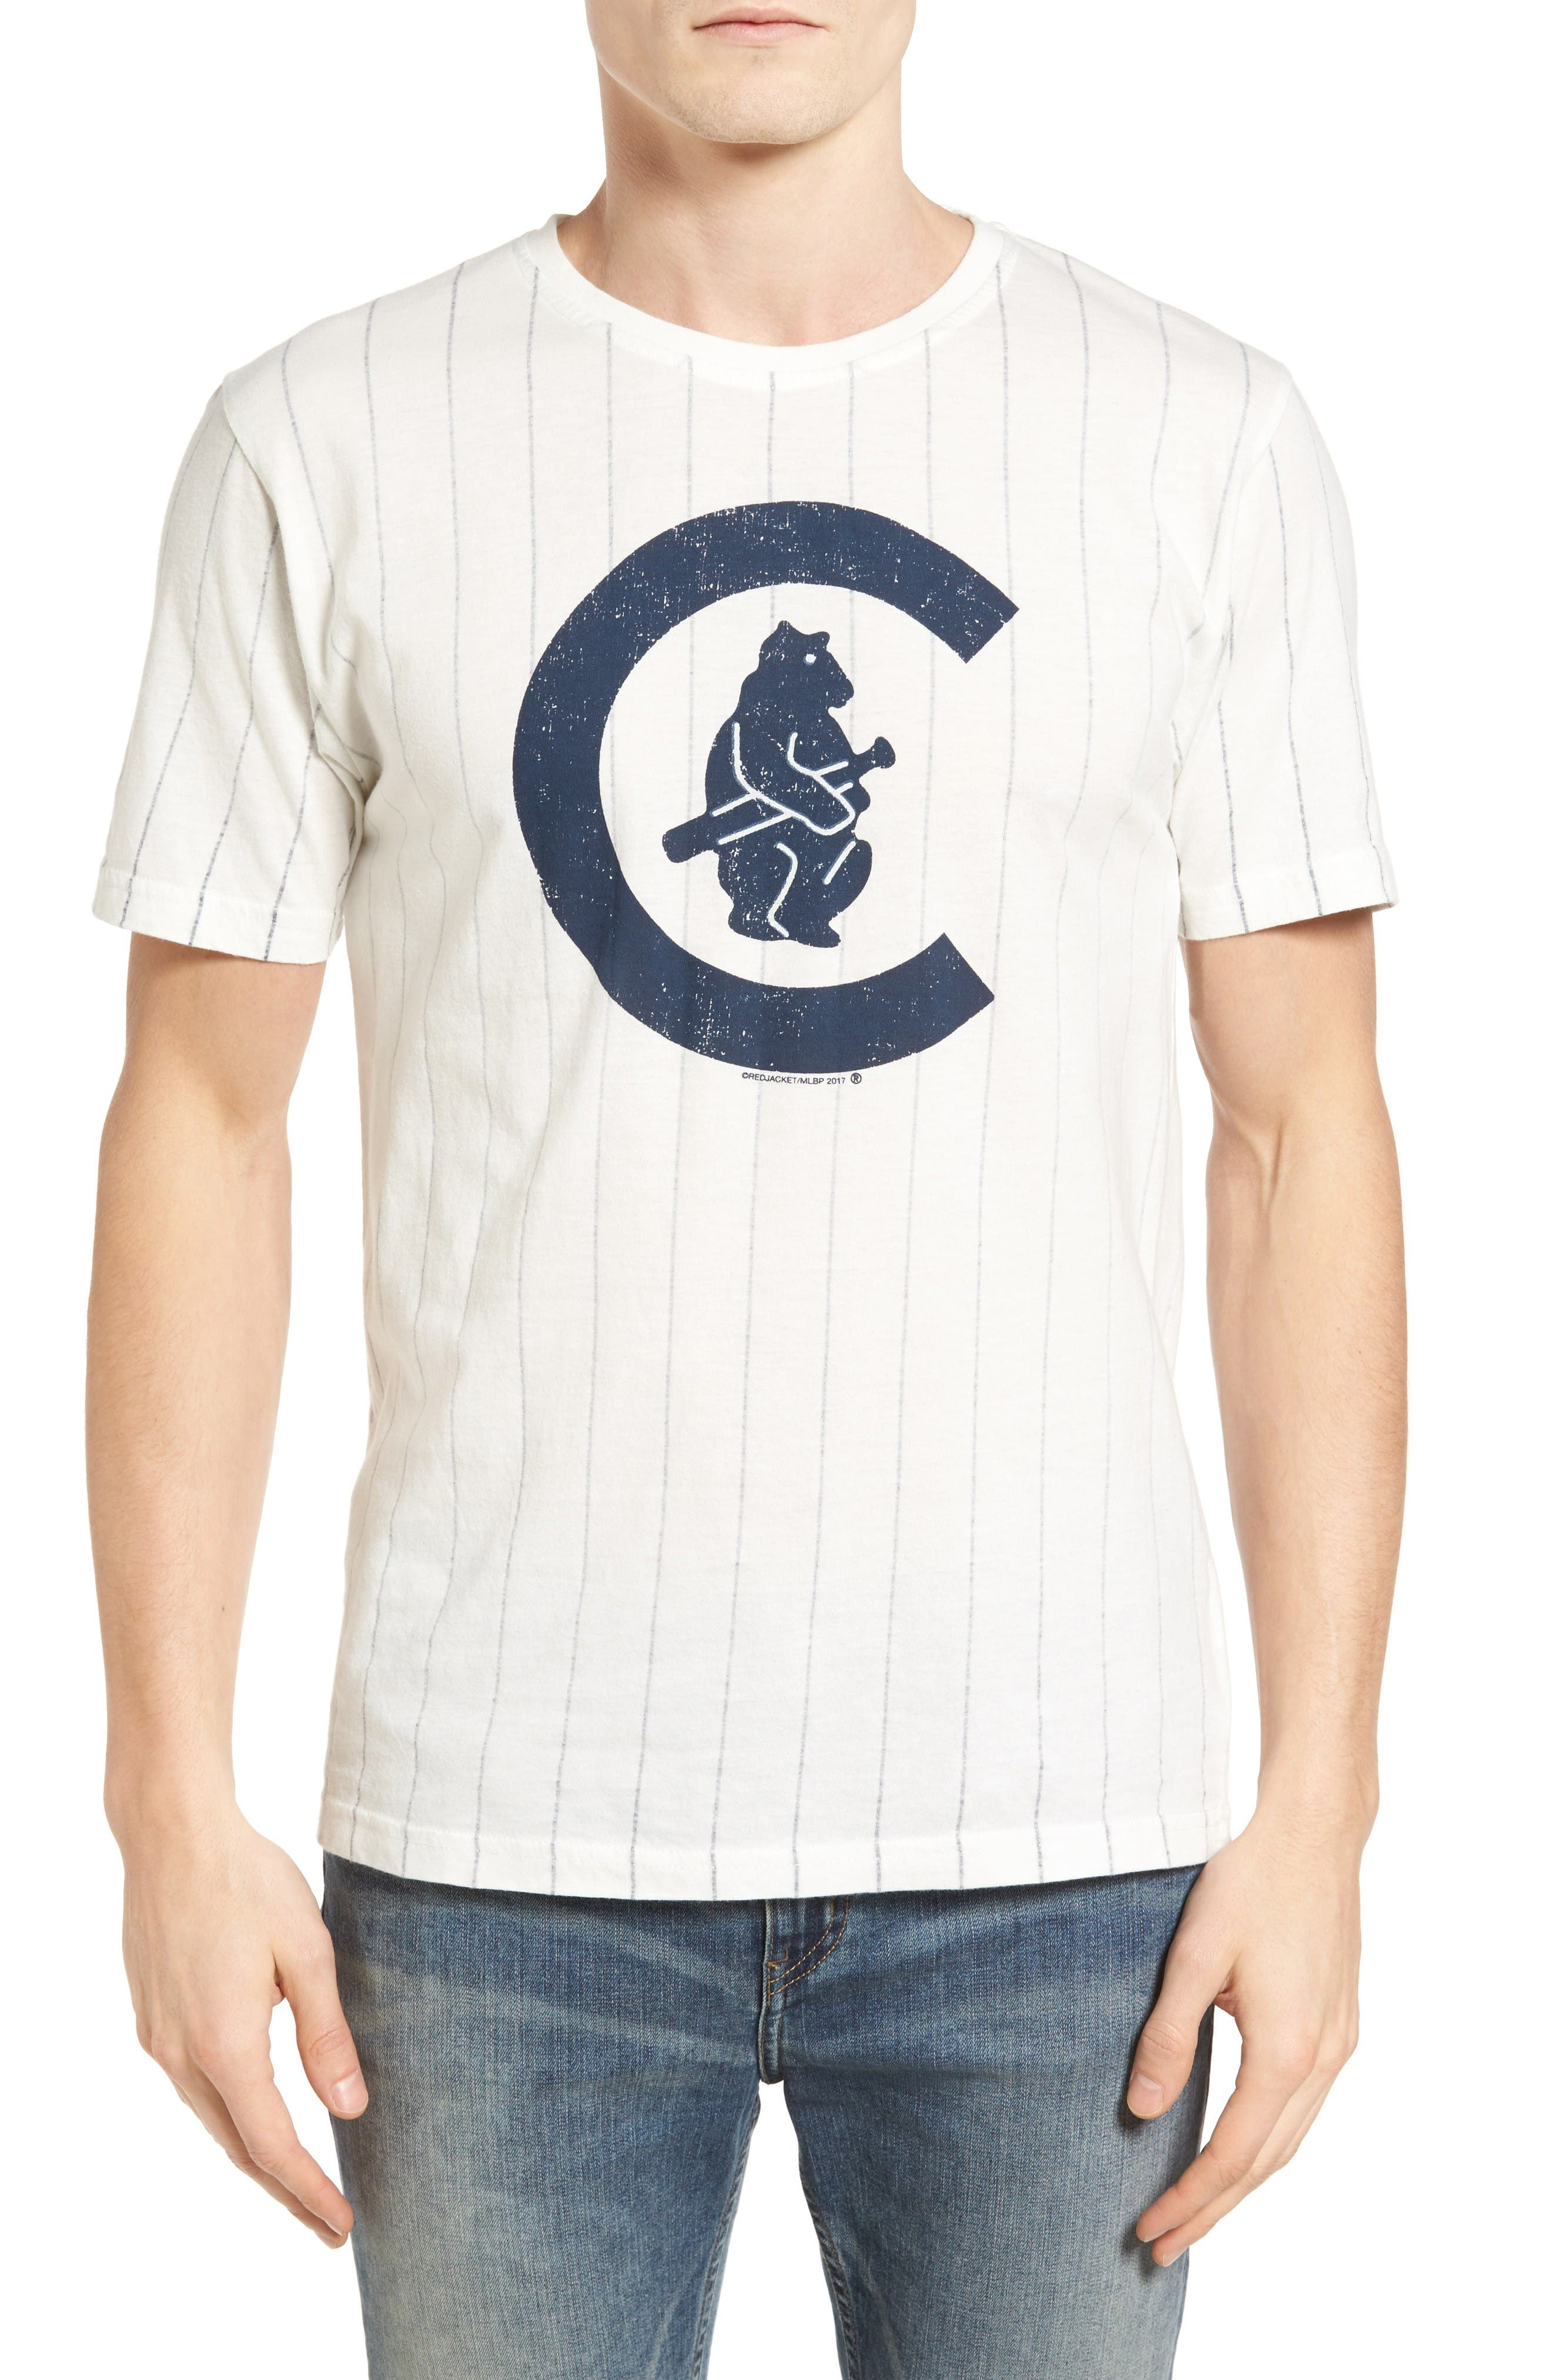 Brass Tack Chicago Cubs T-Shirt,                         Main,                         color, Cream/ Navy